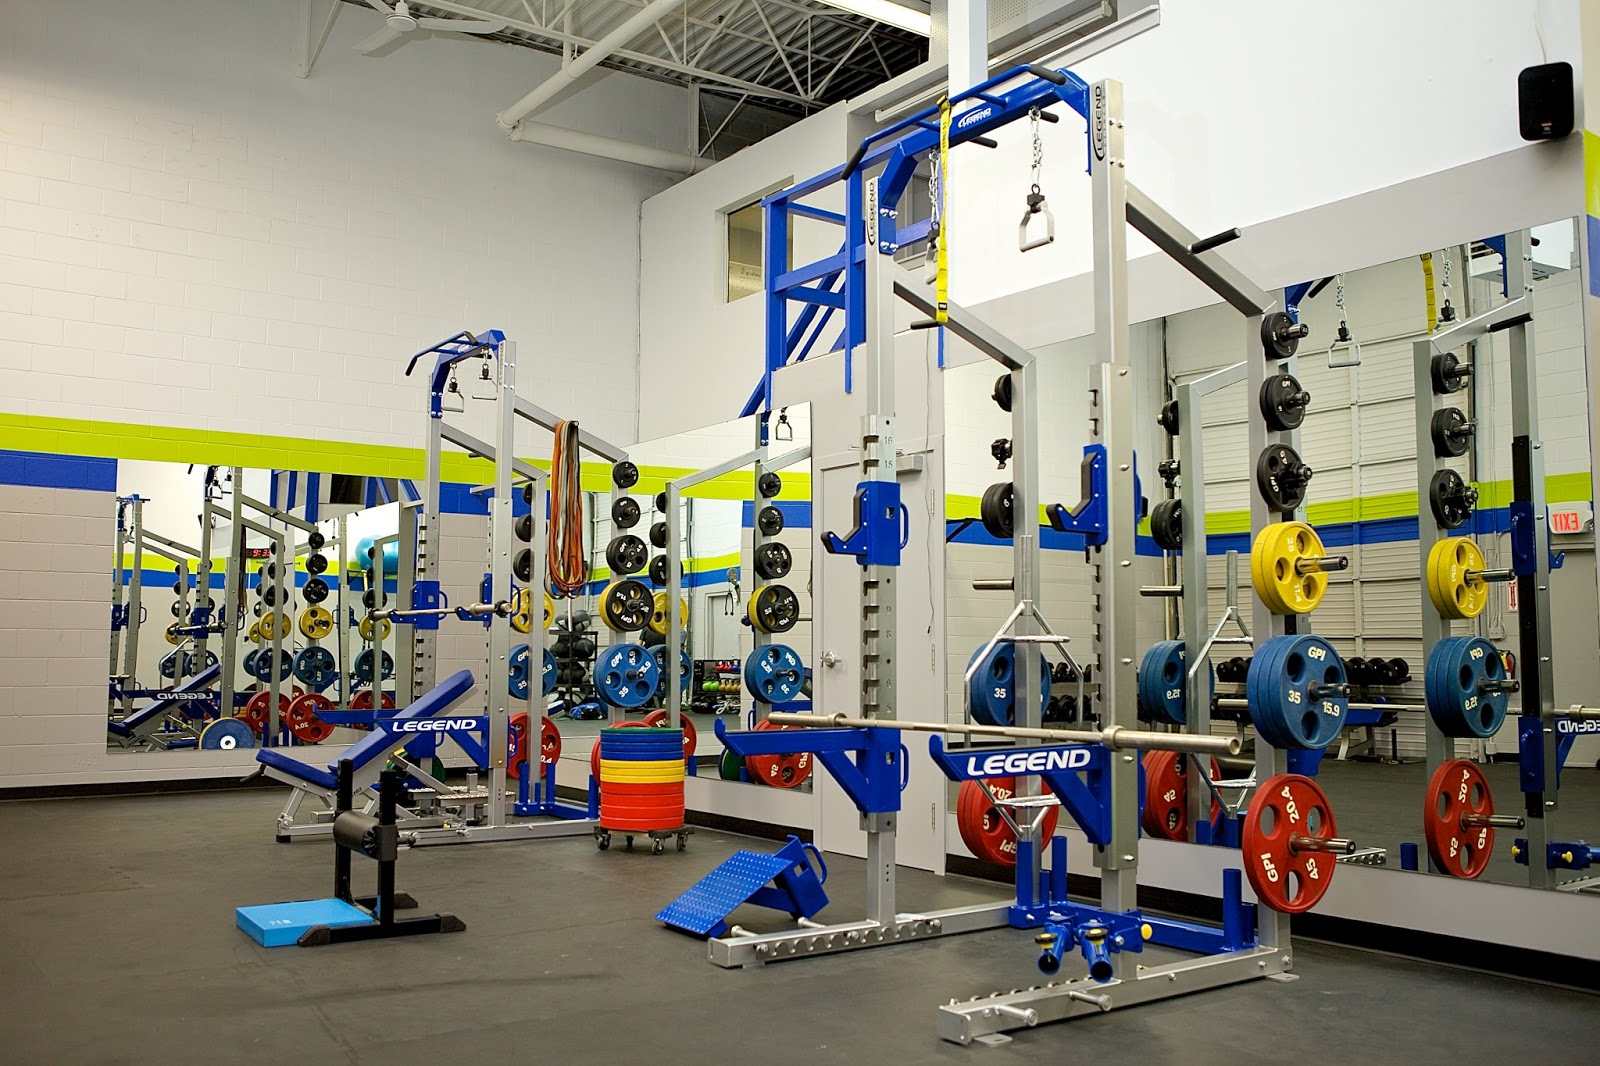 Andrew heming 39 s blog the semi private training option for Best home gym design ideas